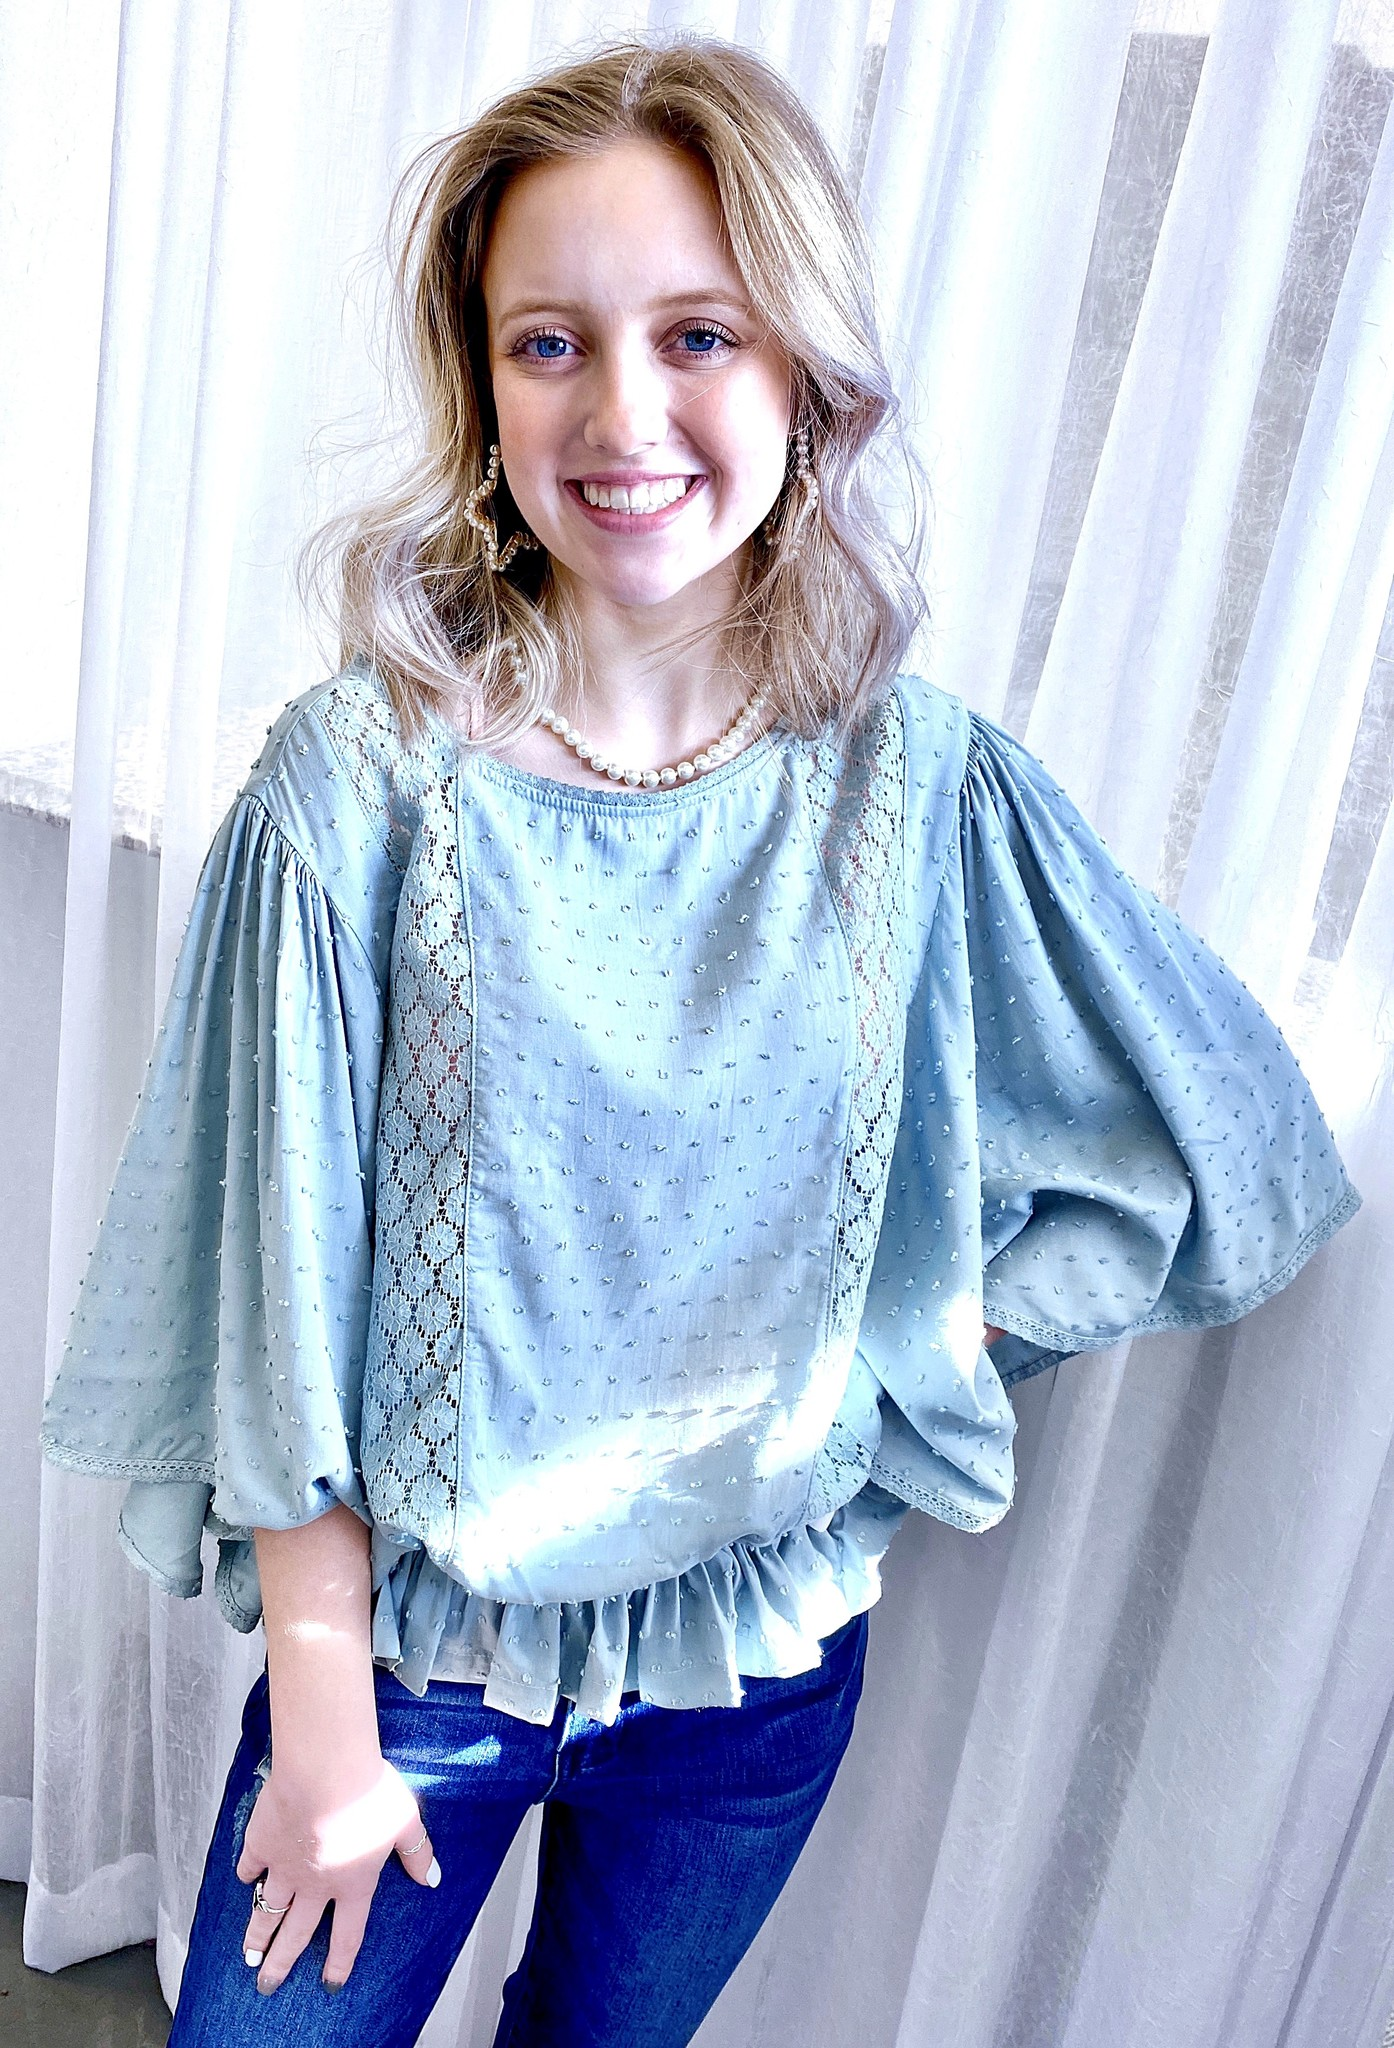 Faded Teal Cutout Detail Wing Sleeved Top